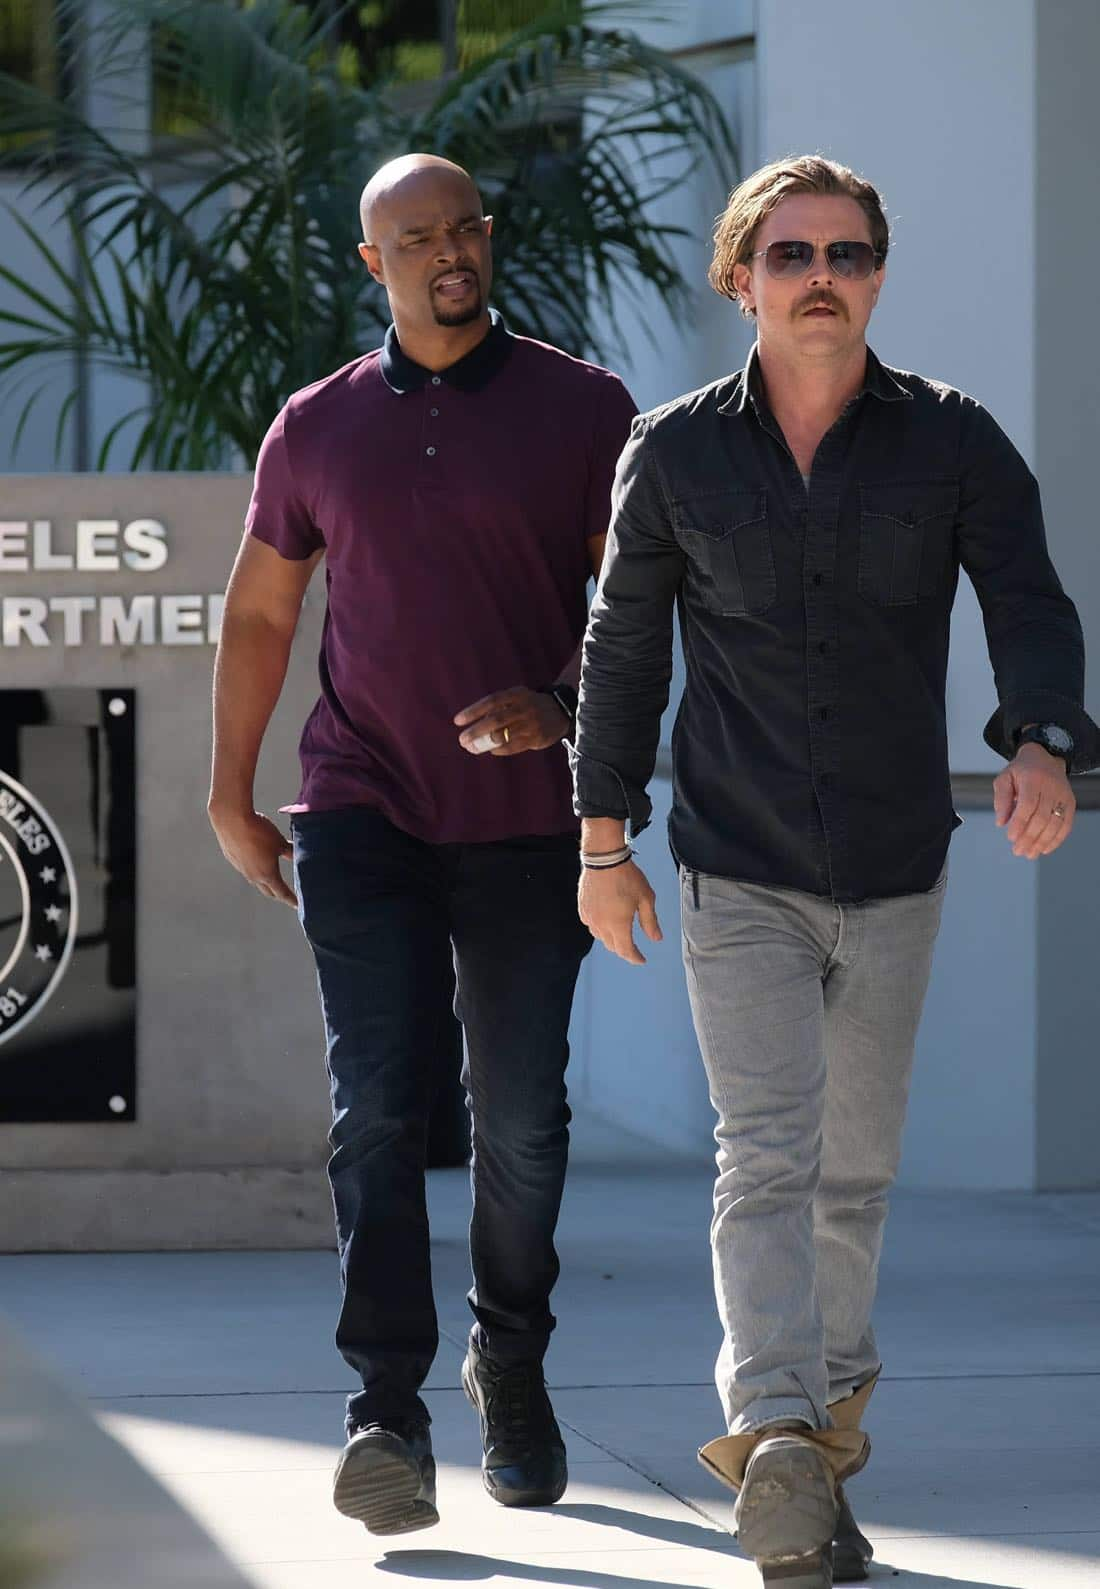 """LETHAL WEAPON: Pictured L-R: Damon Wayans and Clayne Crawford in the """"El Gringo Loco"""" Season Two premiere episode of LETHAL WEAPON airing Tuesday, Sept. 26 (8:00-9:00 PM ET/PT) on FOX. ©2017 Fox Broadcasting Co. CR: Darren Michaels/FOX"""